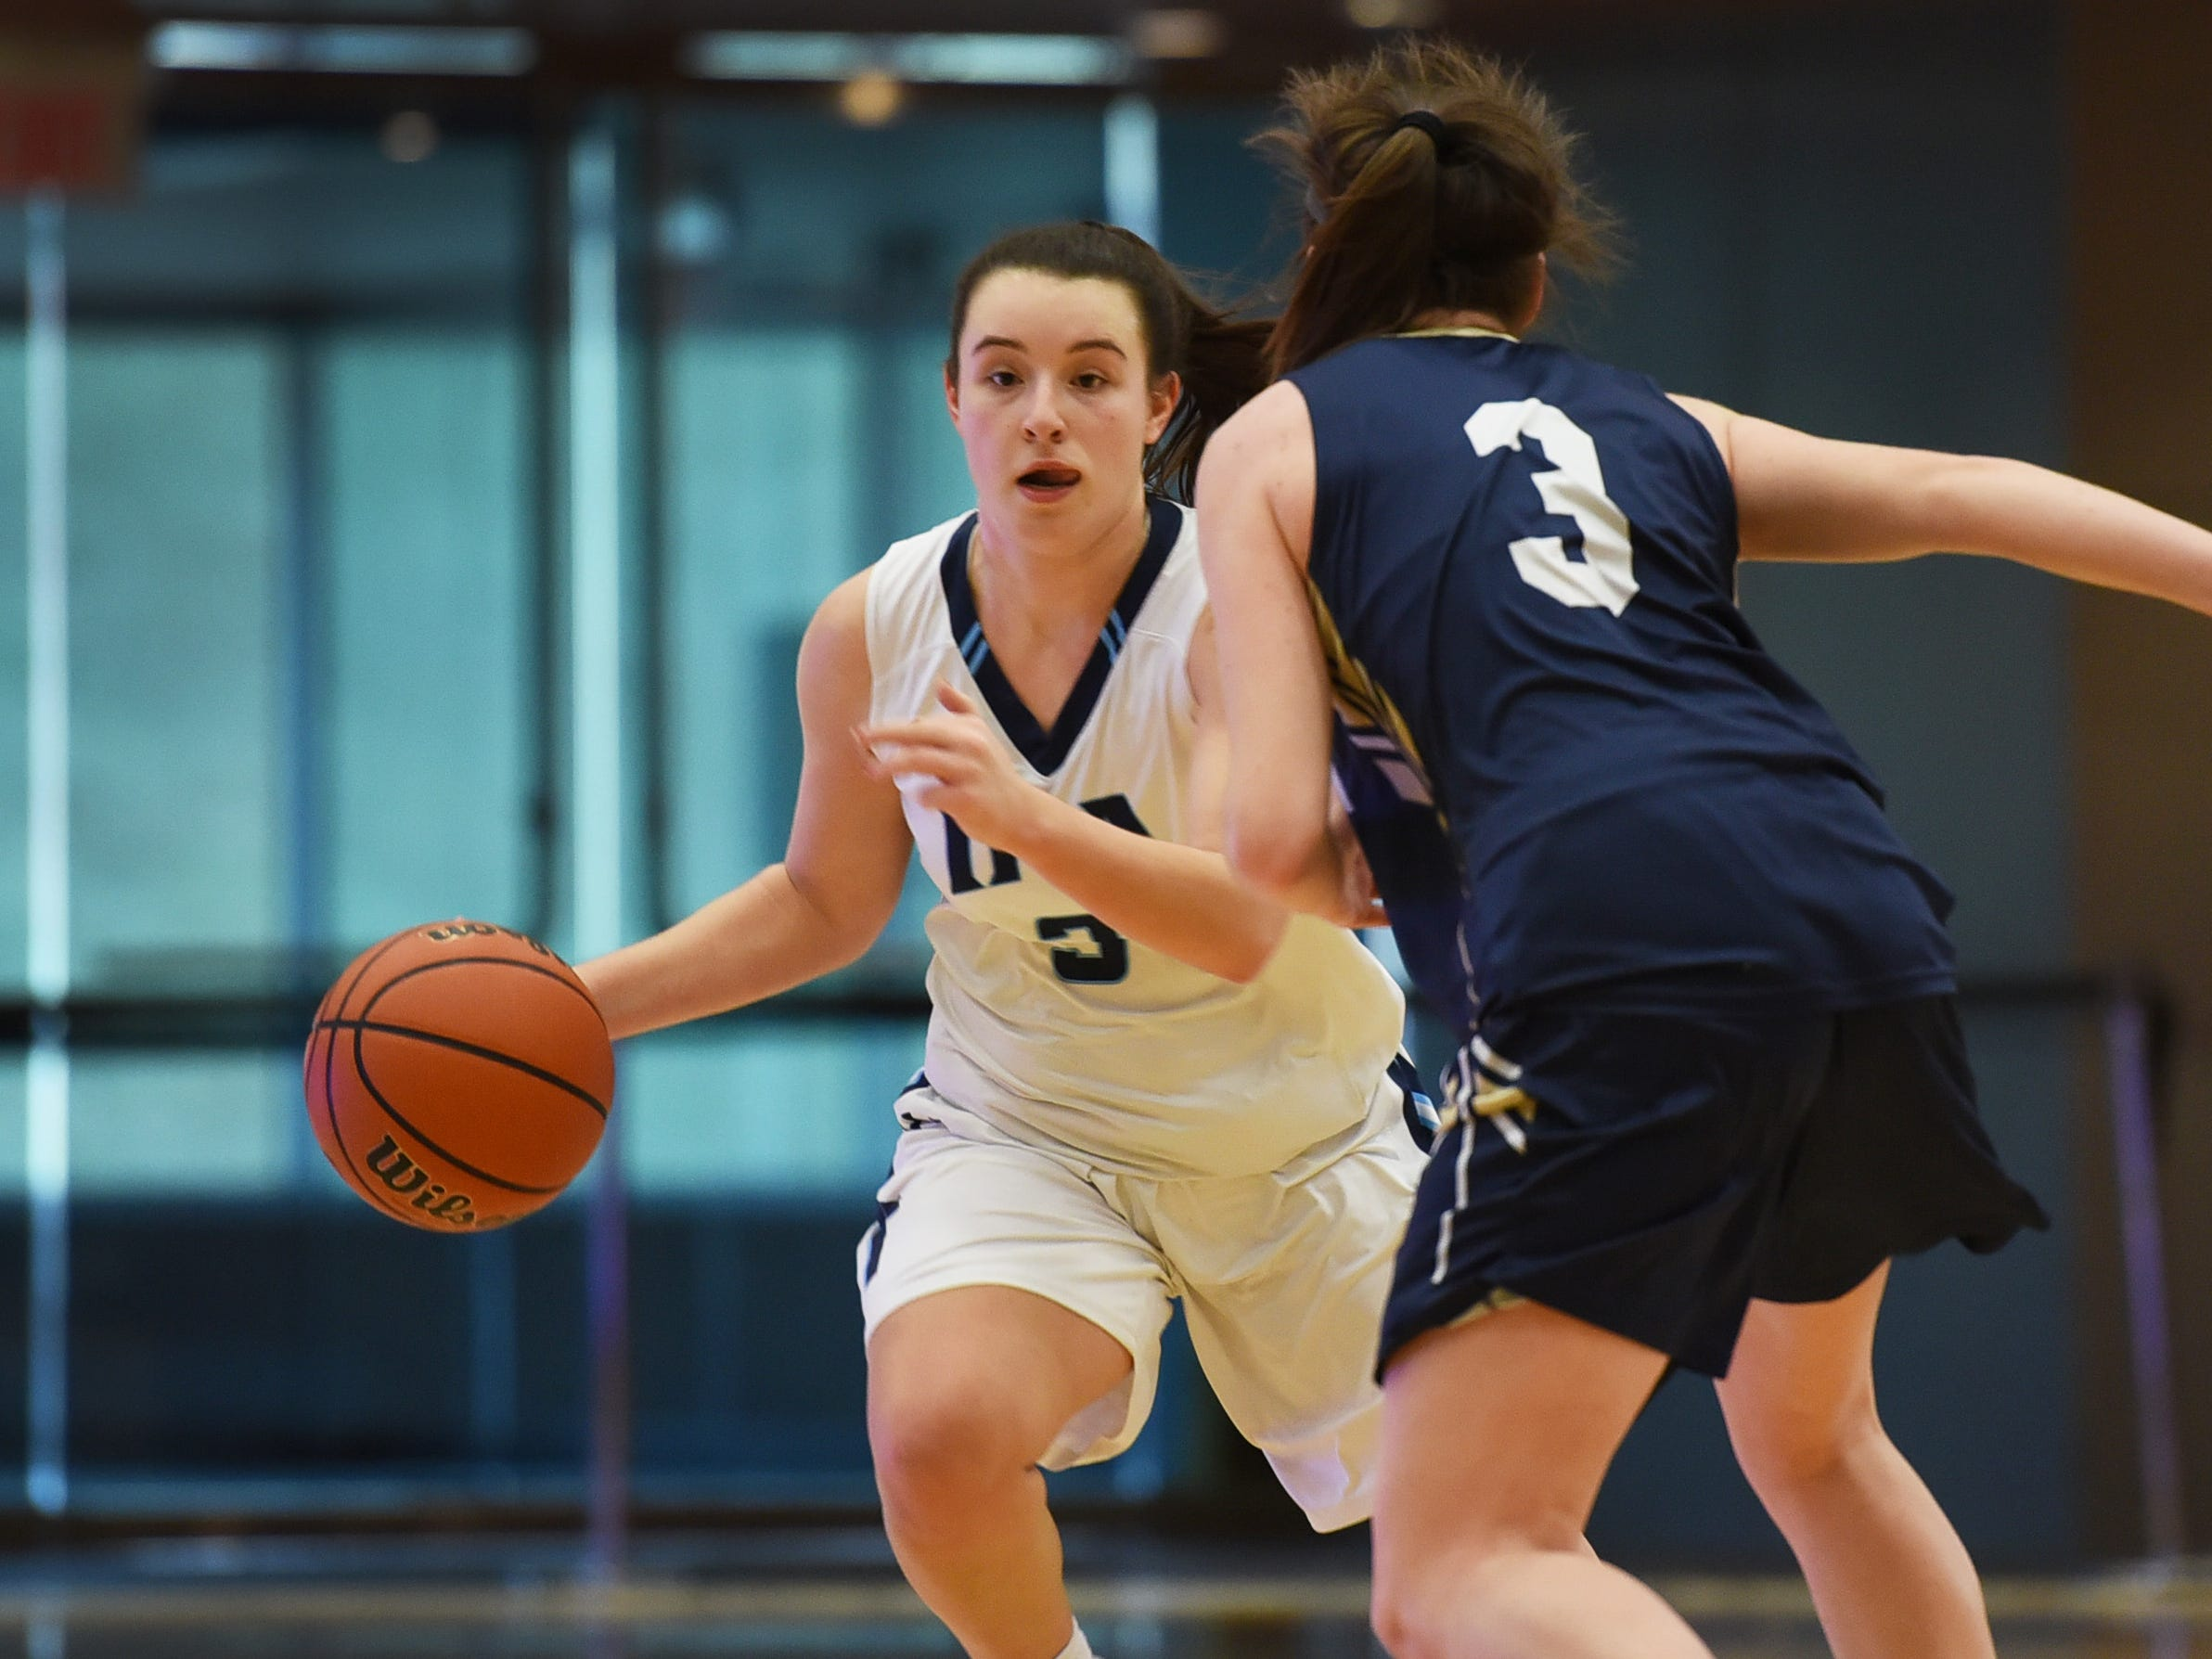 Brittany Graff (no. 3) of Immaculate Heart makes her way with the ball as she tries to pass Noelle Gonzalez (no. 3) of NV/Old Tappan in the first half during the 2019 Bergen County girls basketball championship semifinal at Ramapo College in Mahwah on 02/10/19.